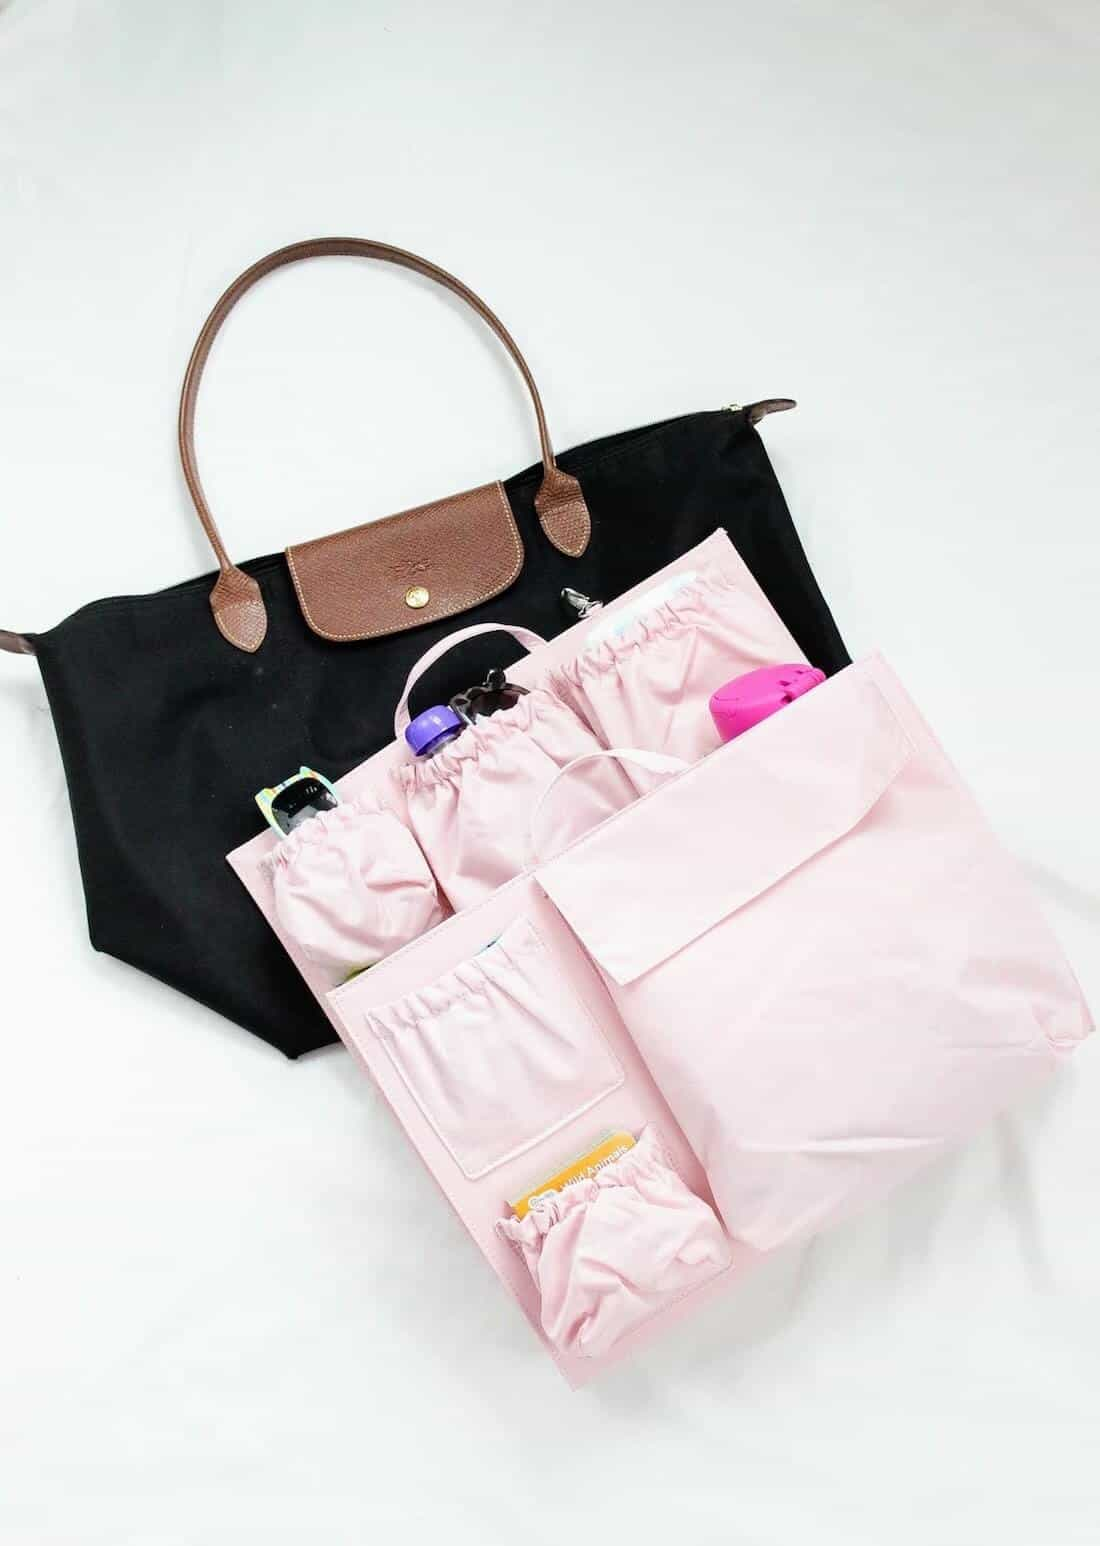 Pink insert for diaper bag for toddlers.